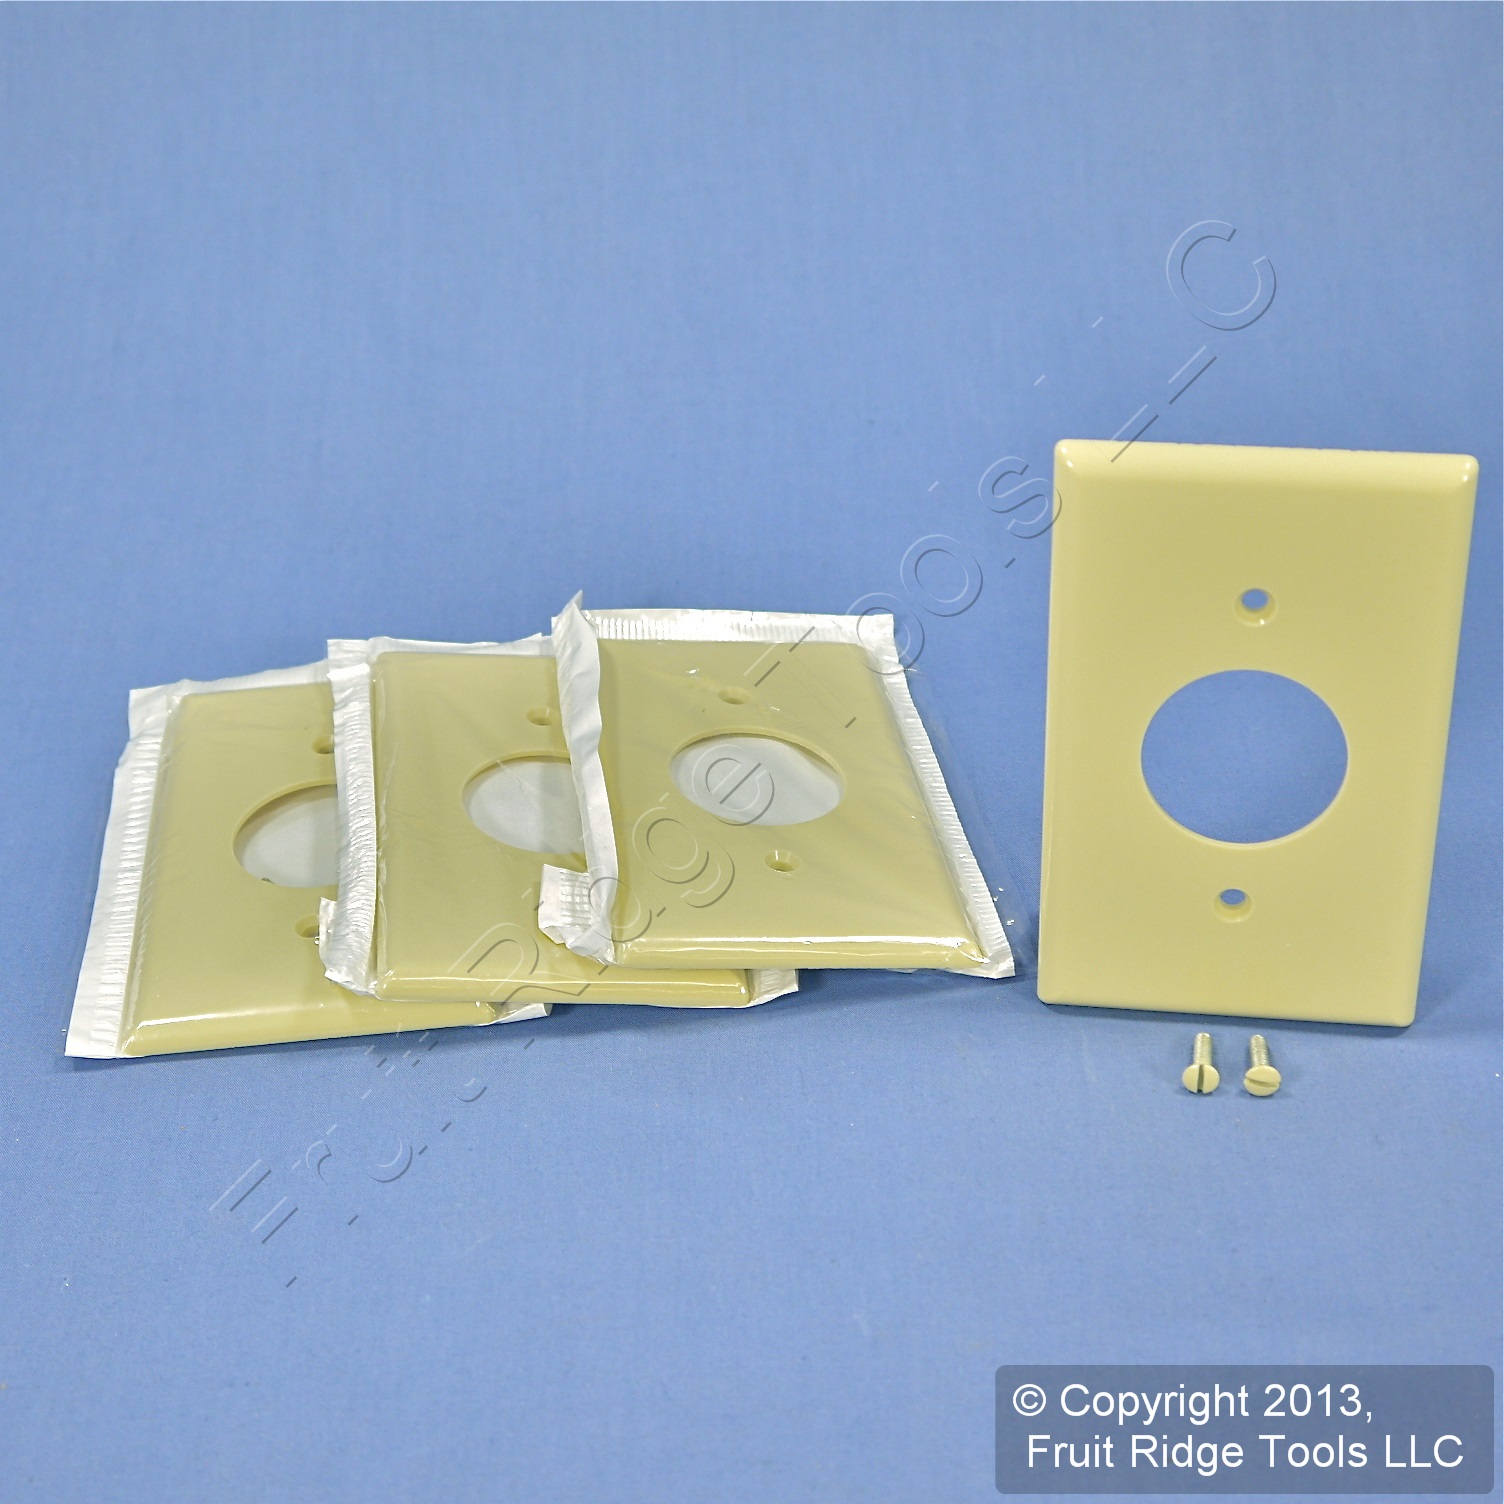 4 Leviton Ivory 1406 Receptacle Wall Plates Single Outlet Plastic